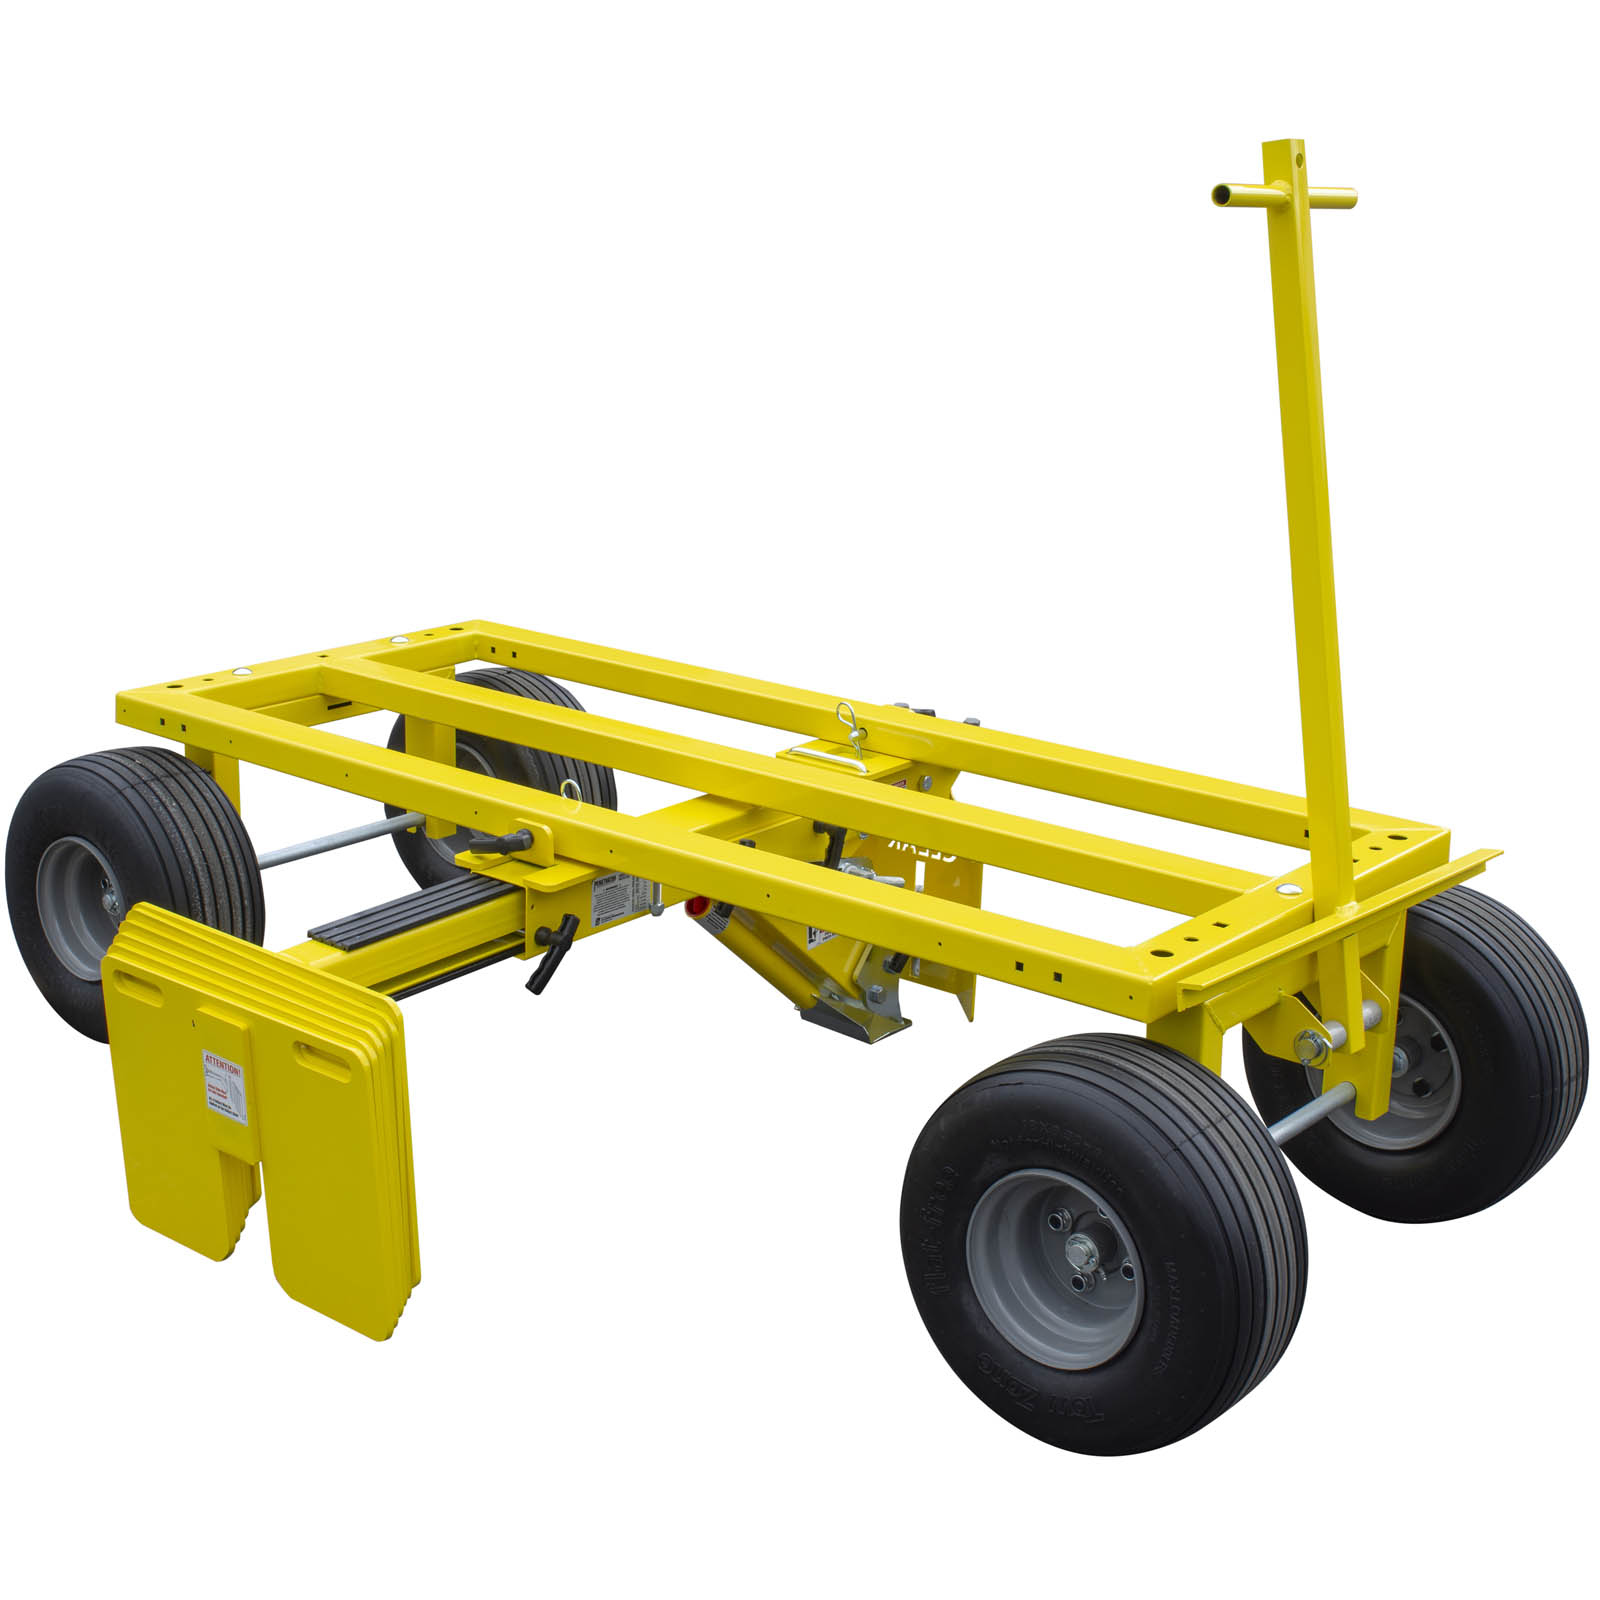 Penetrator Mobile Fall Protection Penetrator W Cart From